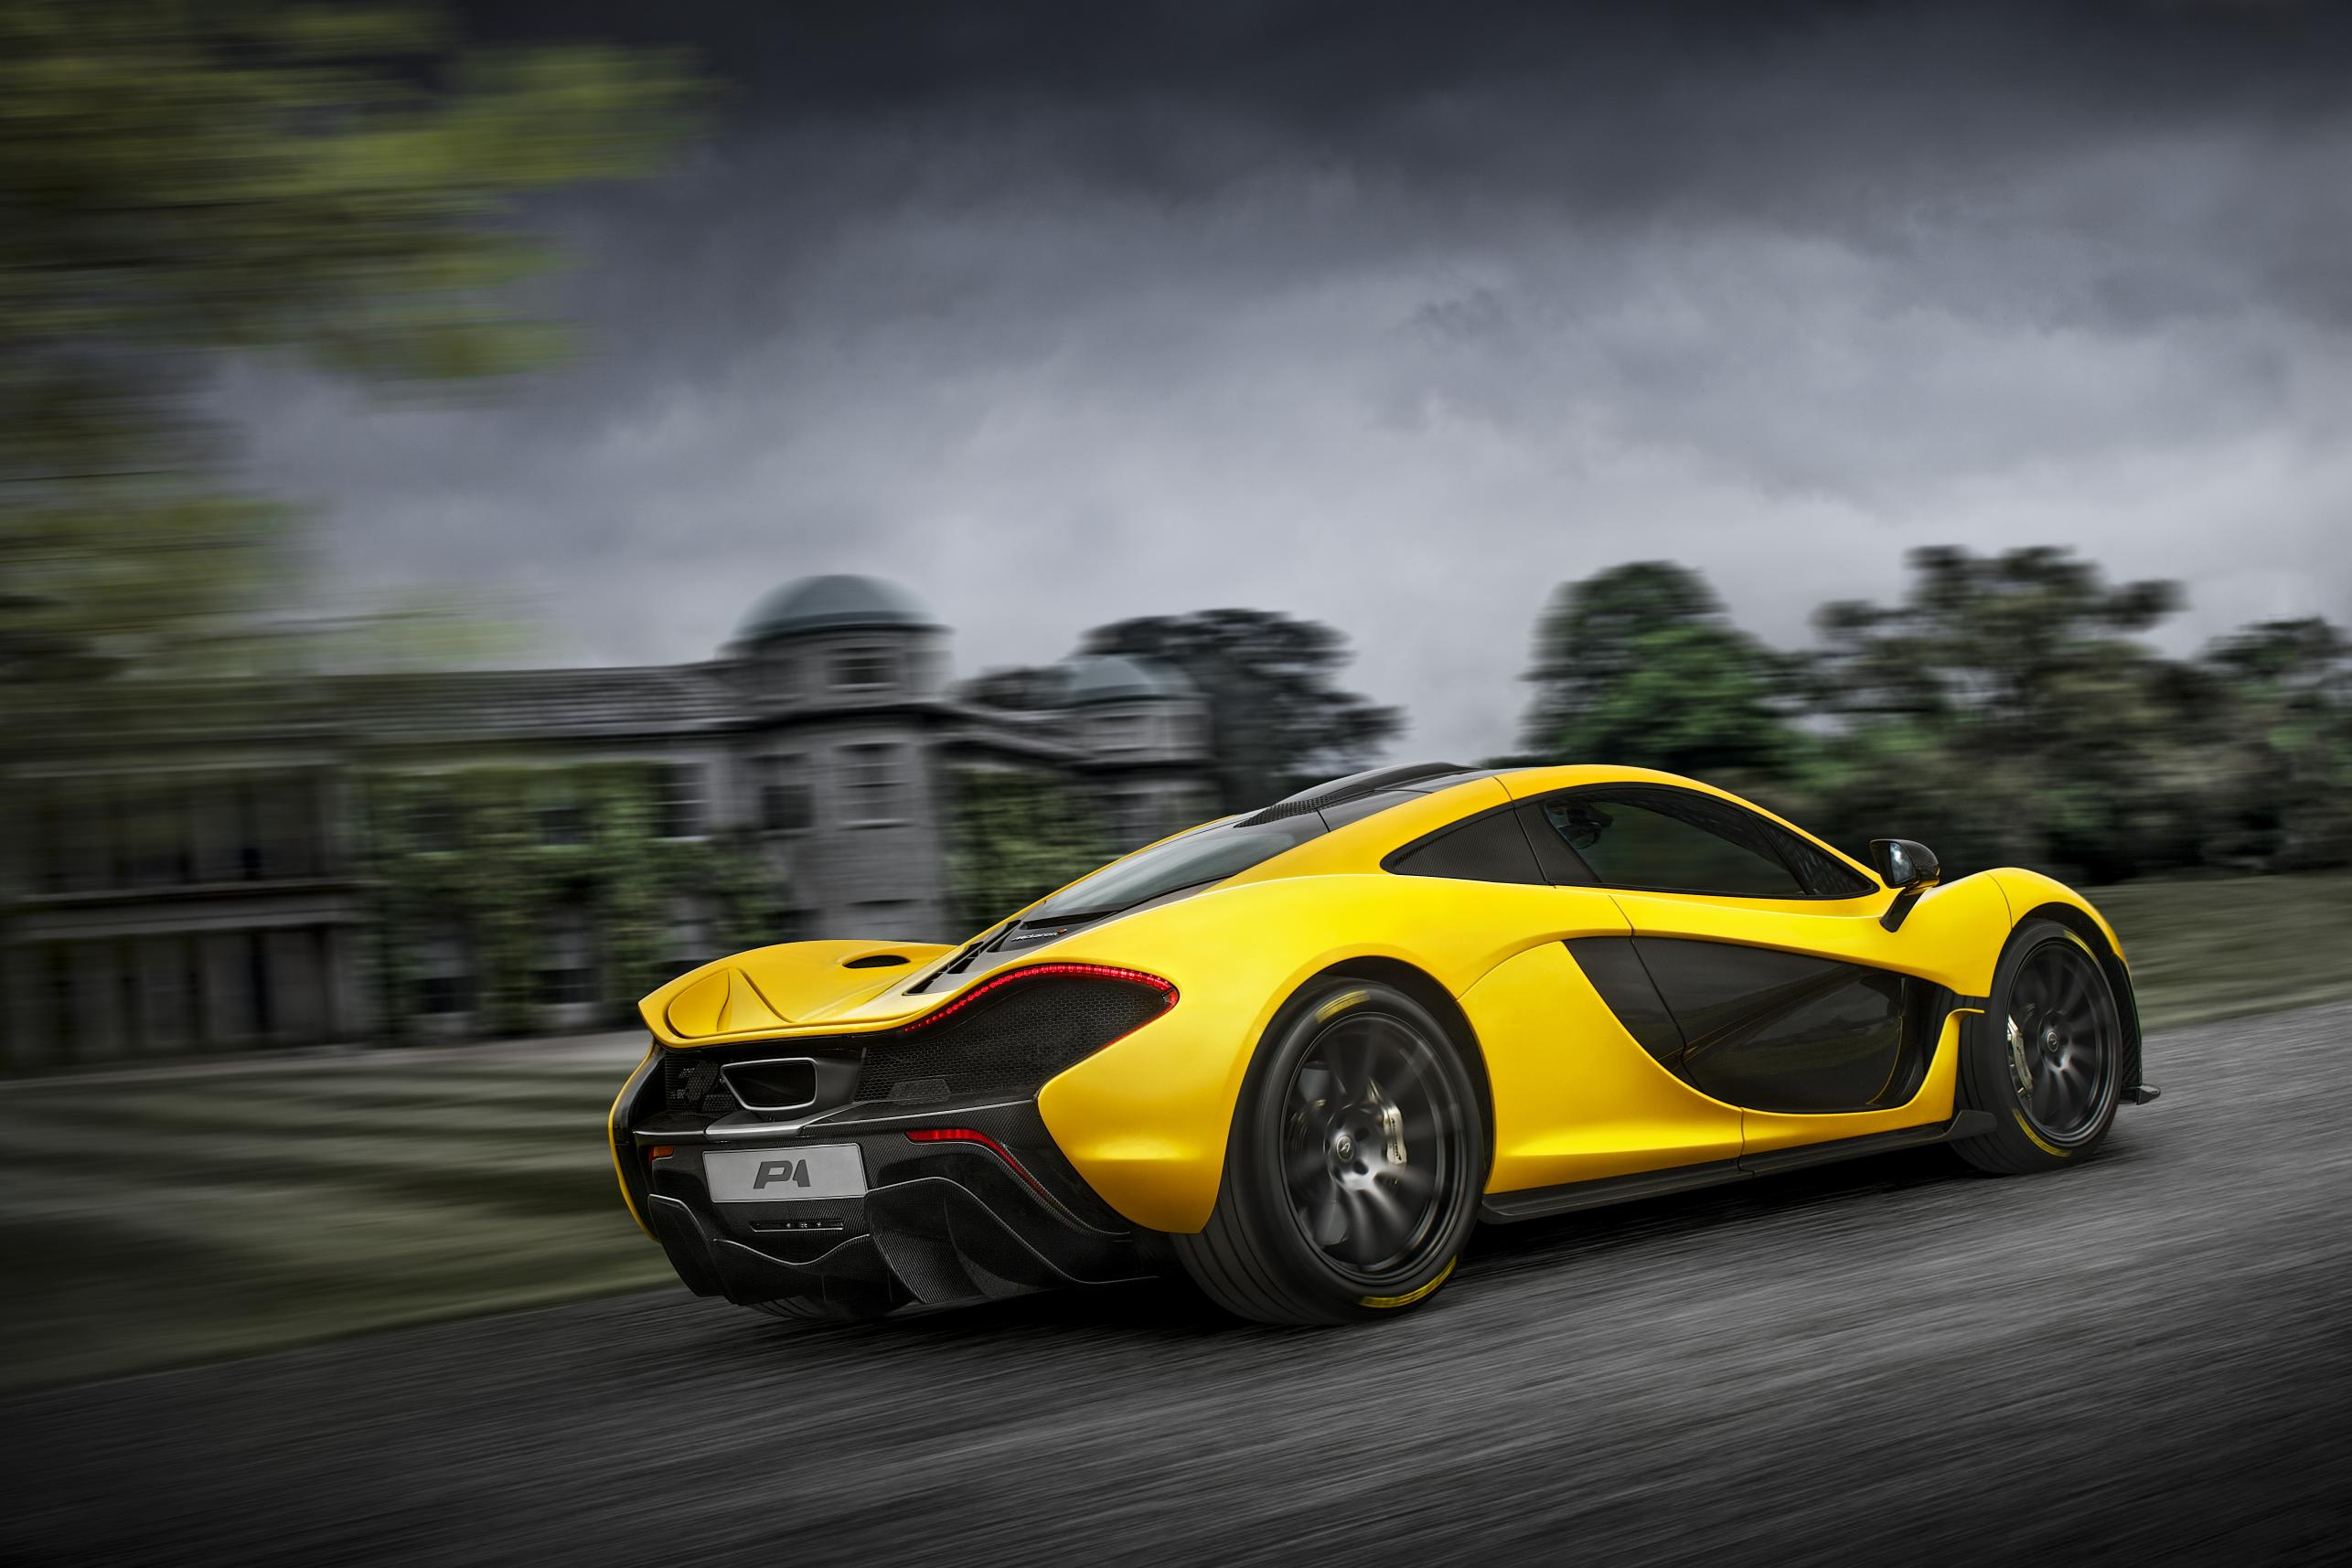 forza 5 mclaren p1. Black Bedroom Furniture Sets. Home Design Ideas